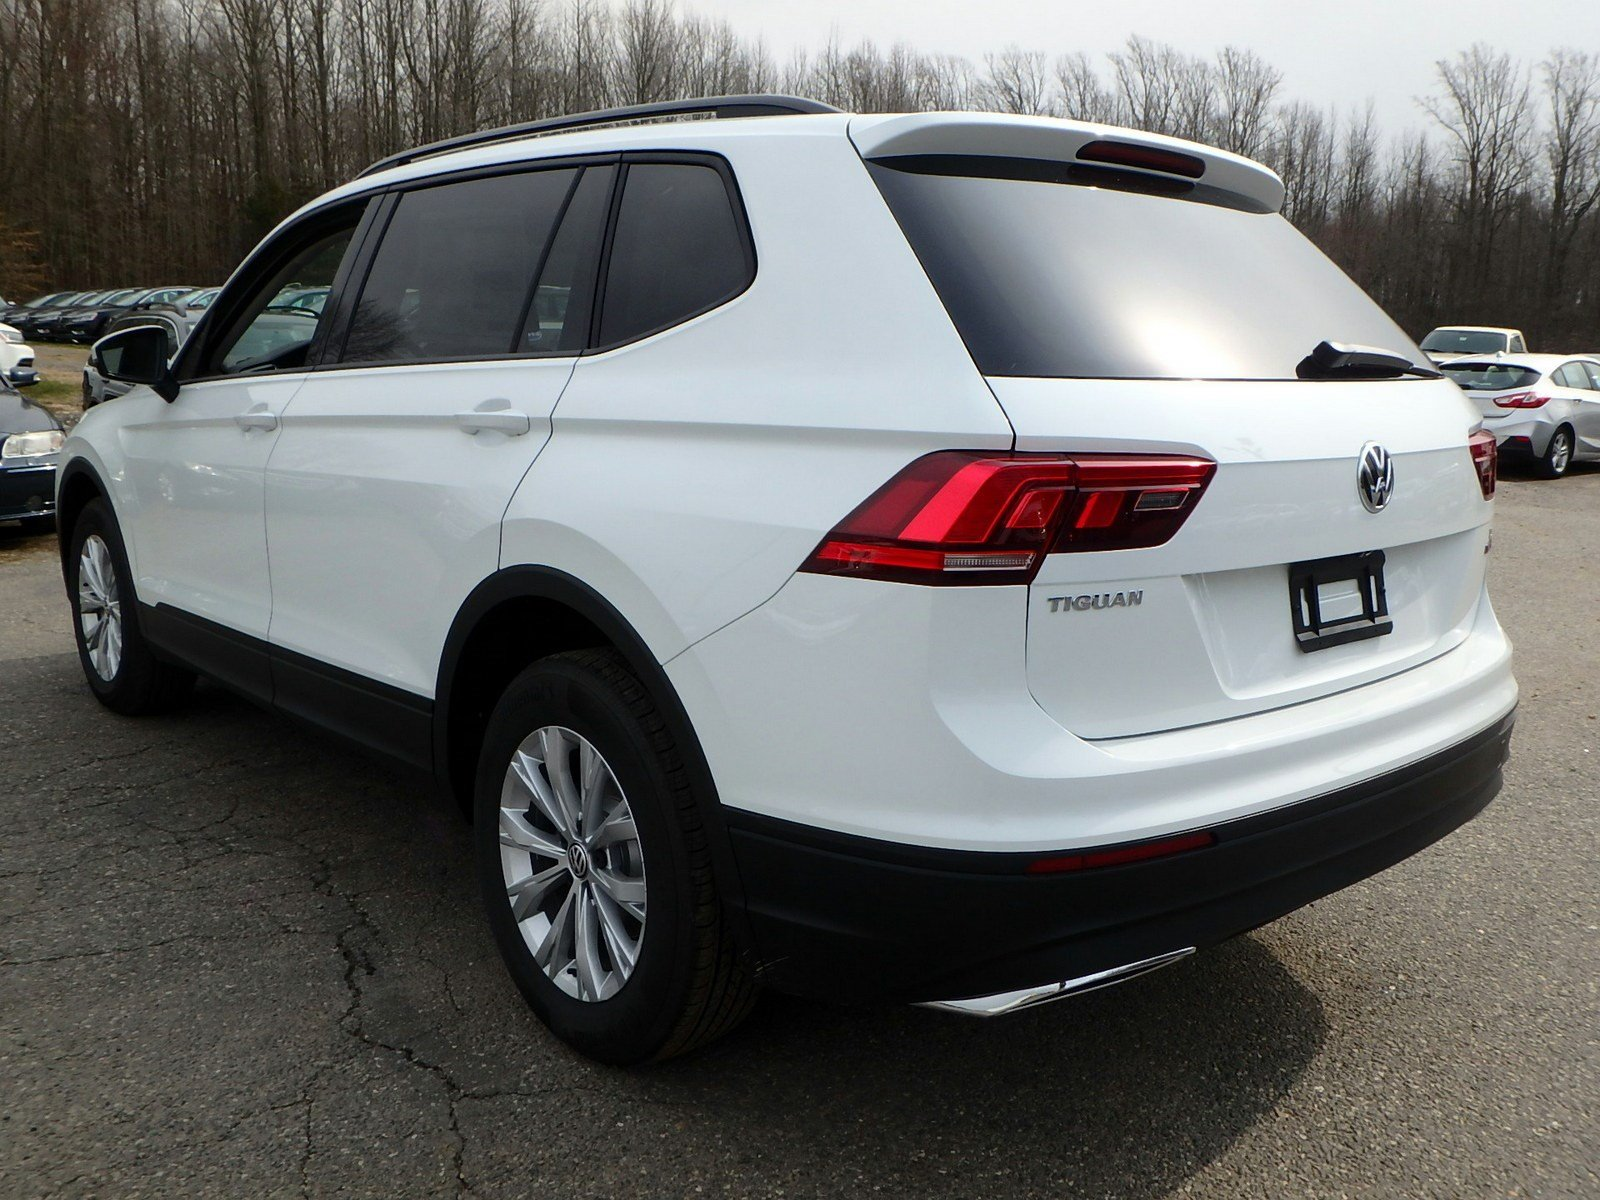 New 2018 Volkswagen Tiguan S with 4MOTION®